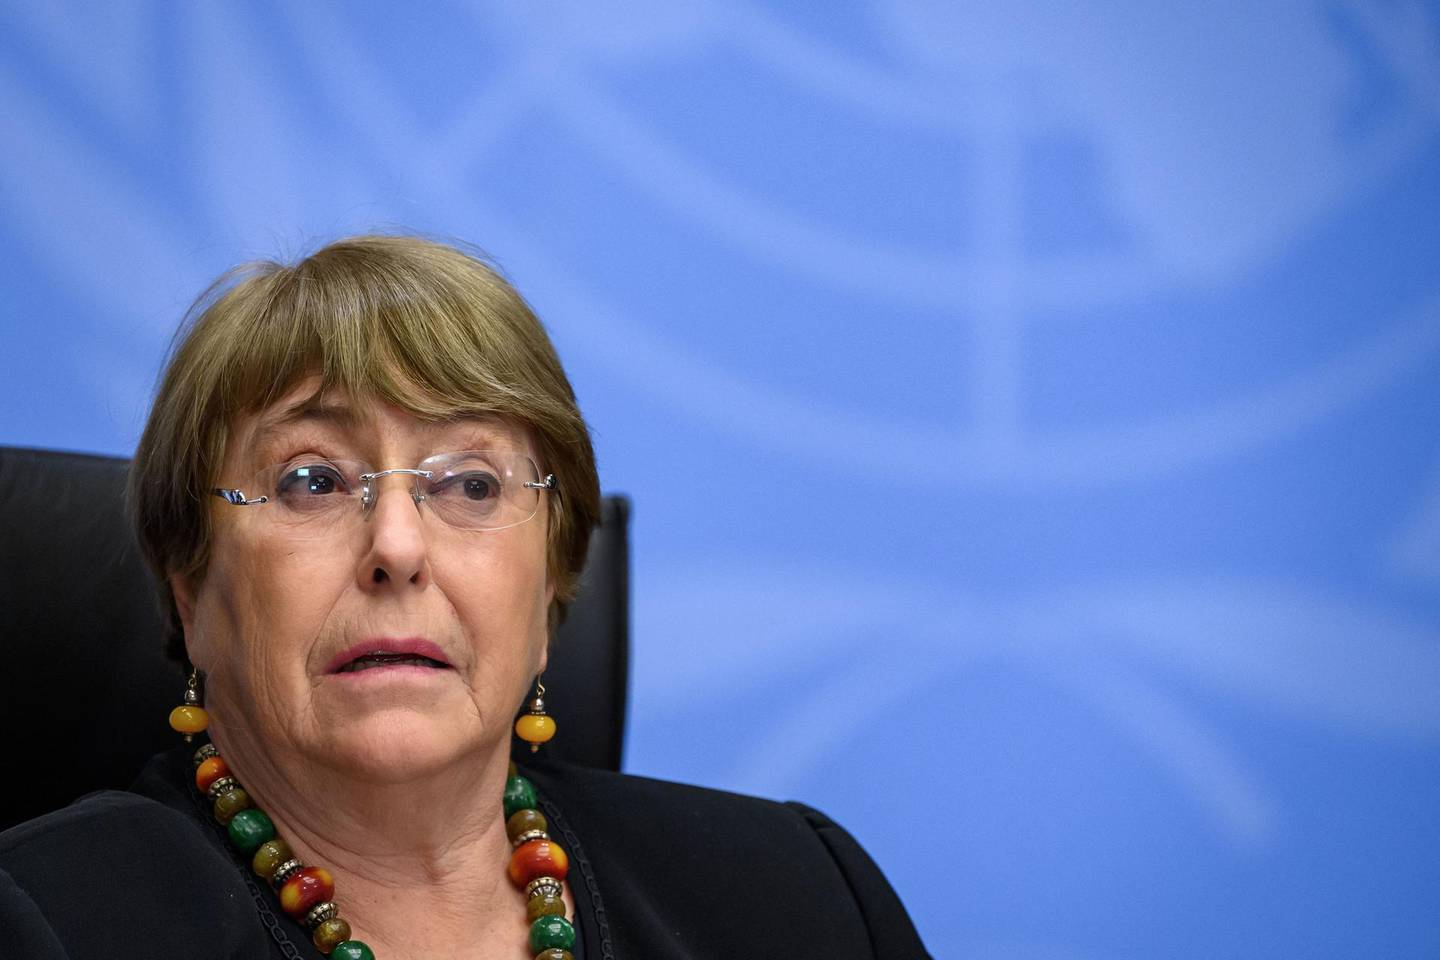 (FILES) In this file photograph taken on December 9, 2020, UN High Commissioner for Human Rights Michelle Bachelet looks on as she attends a press conference in Geneva. Leading human rights organizations and relatives of victims urged the United Nations on May 10, 2021 to create a commission to conduct an independent inquiry into police violence against African Americans in the United States. Human Rights Watch, Amnesty International and the American Civil Liberties Union were among the dozens of groups that made the request in a letter to UN High Commissioner for Human Rights Michelle Bachelet.   / AFP / Fabrice COFFRINI